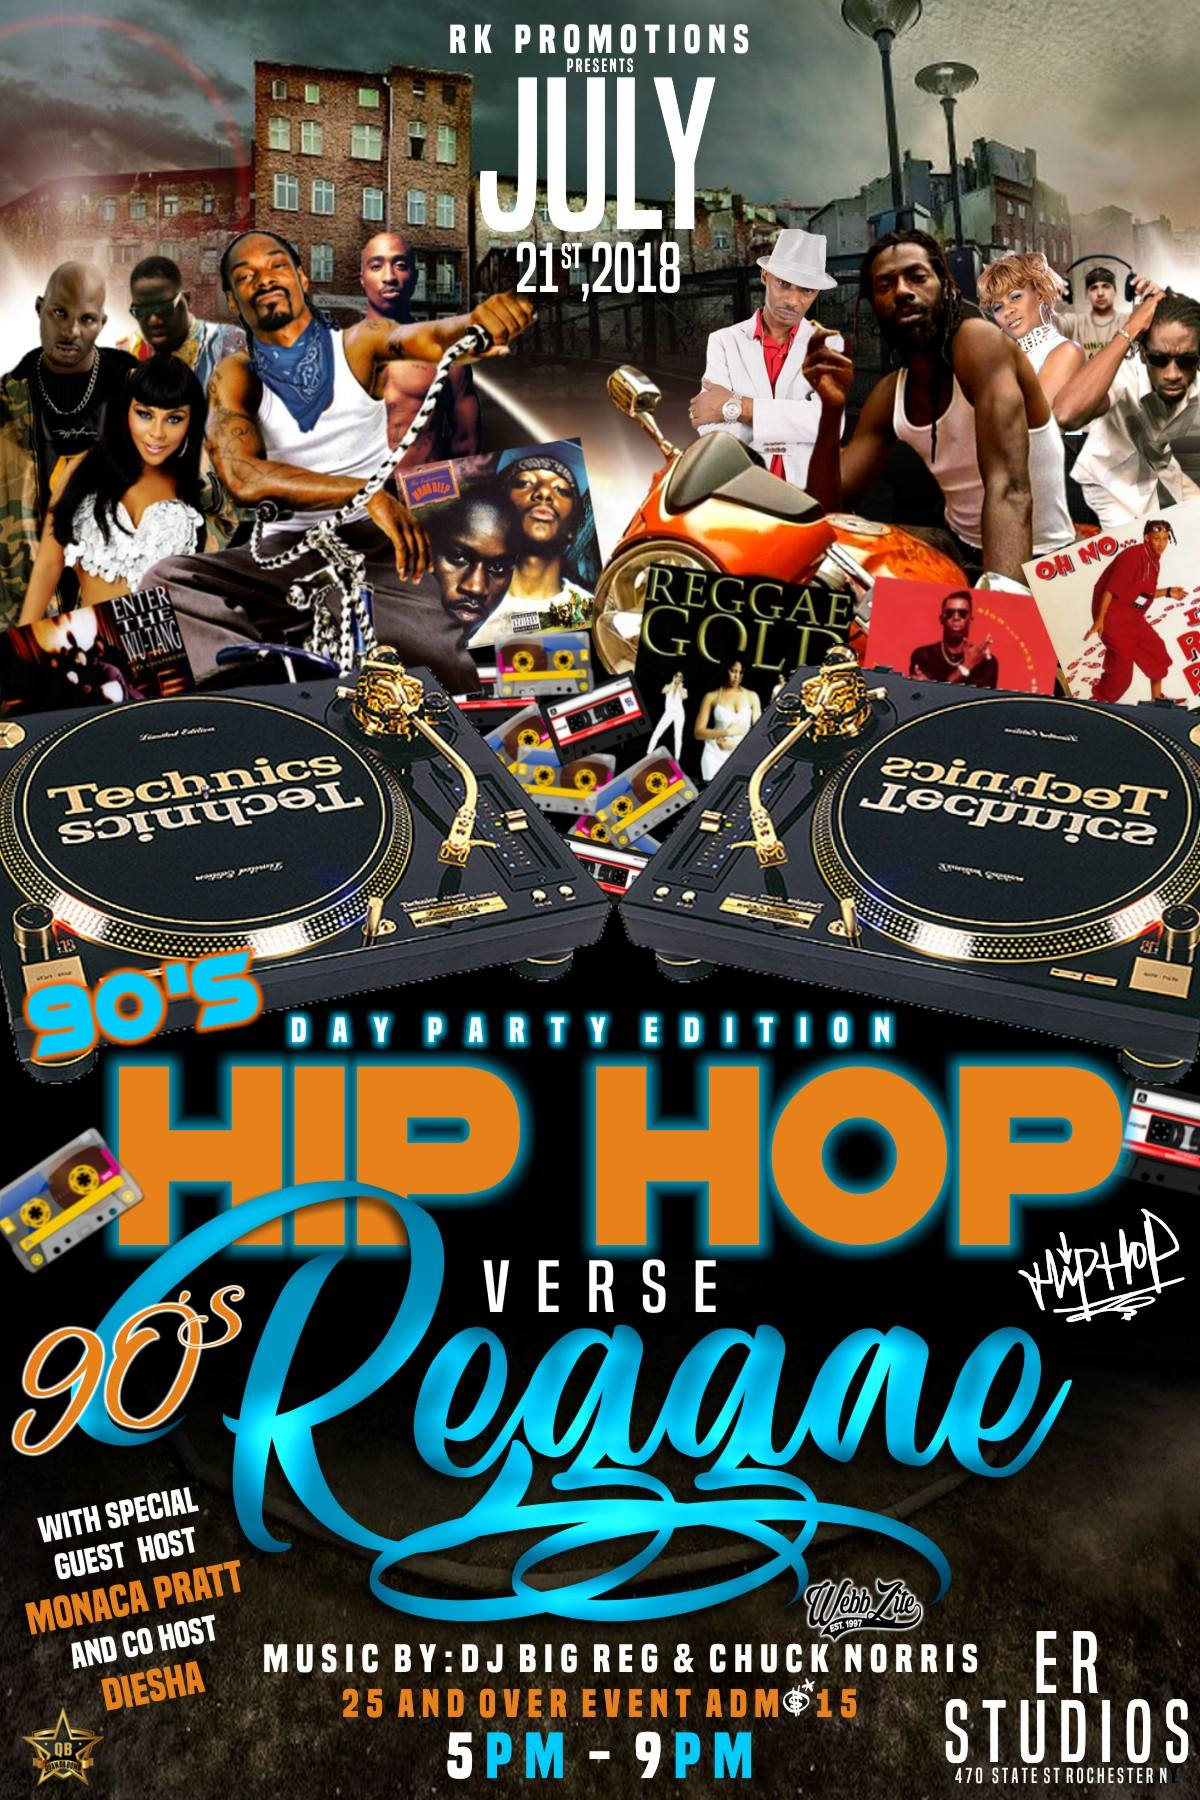 90'S HIP HOP VERSE 90'S REGGAE DAY PARTY EDITION